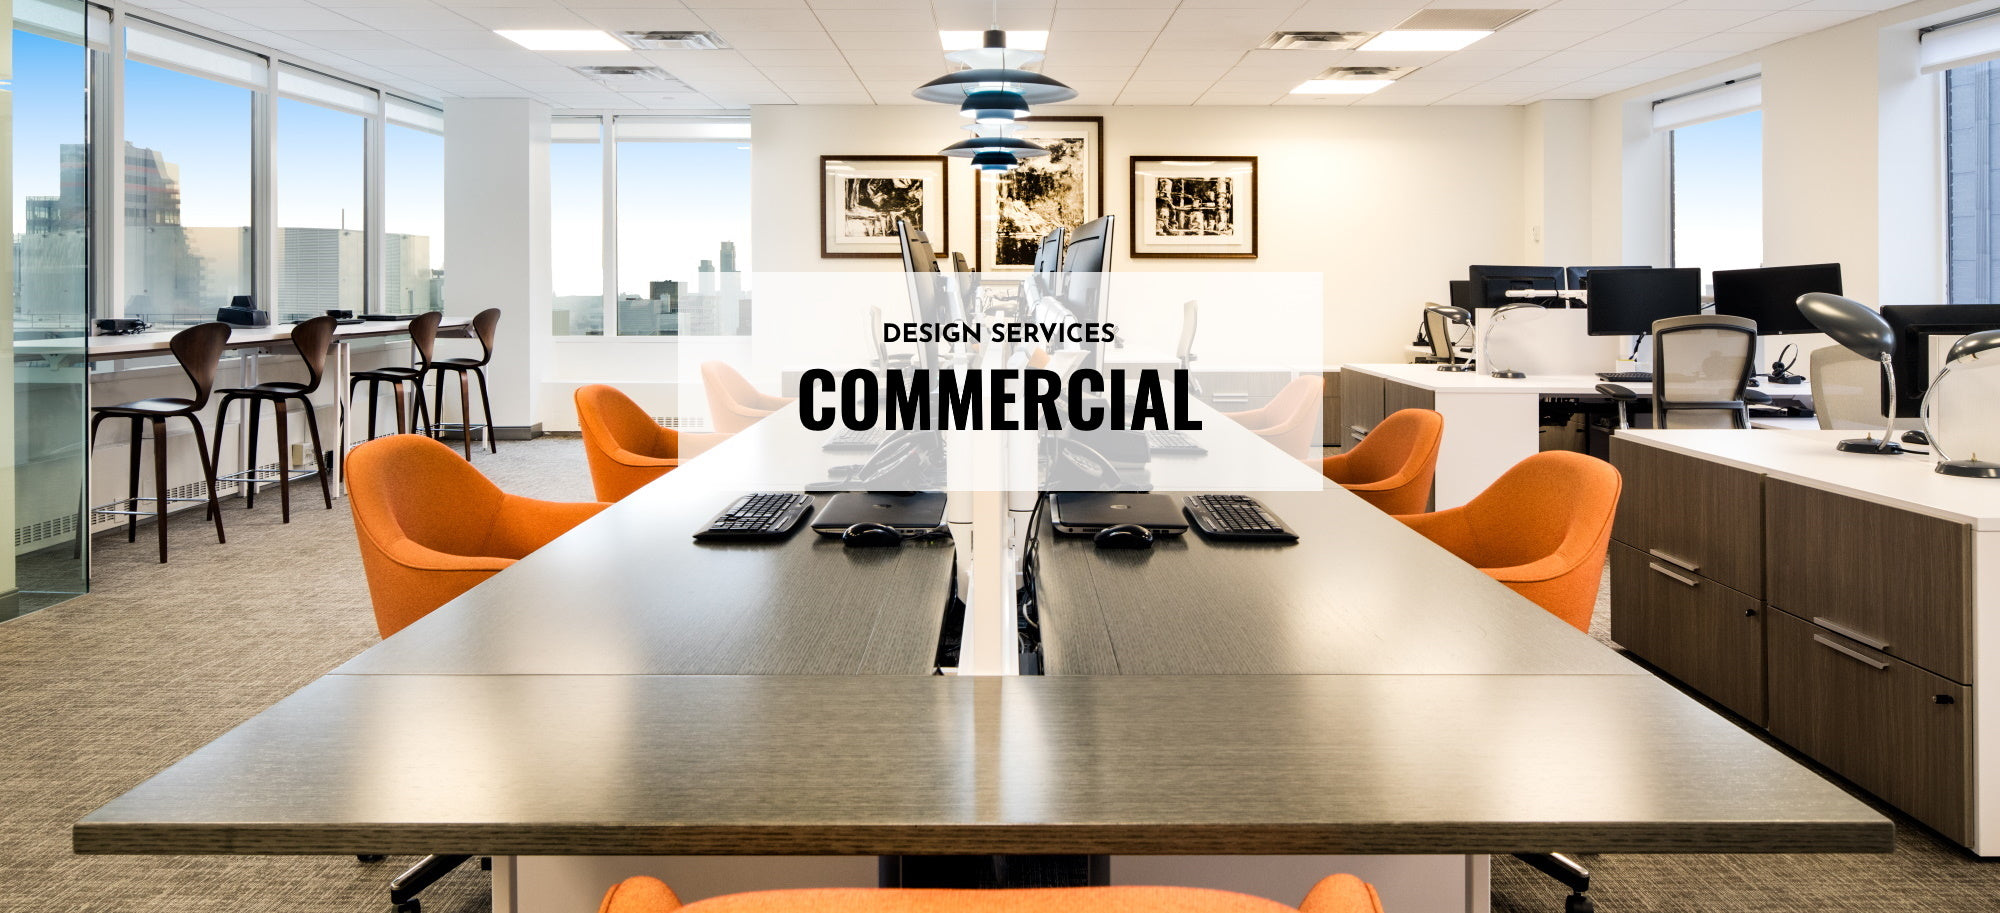 Design Services - Commercial